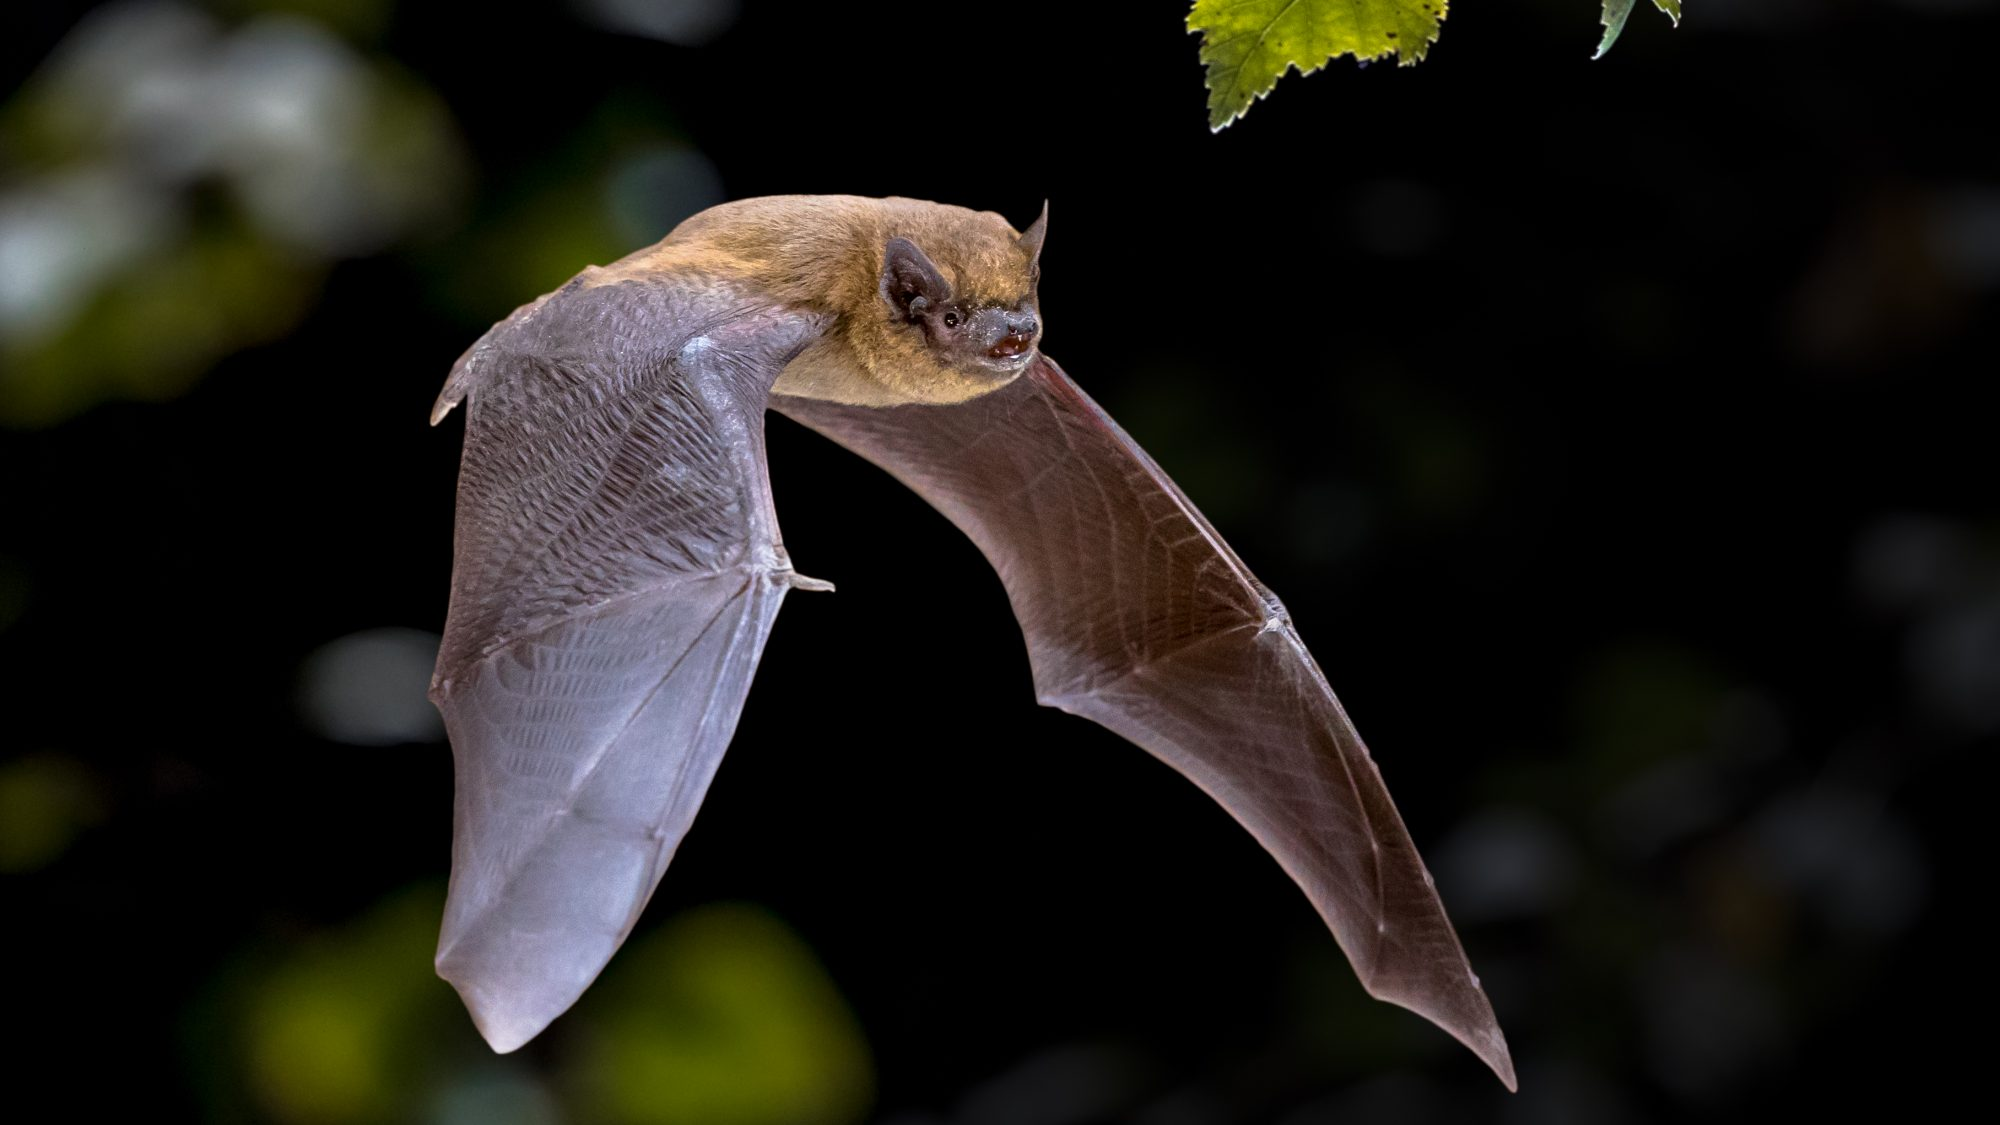 A bat flying.